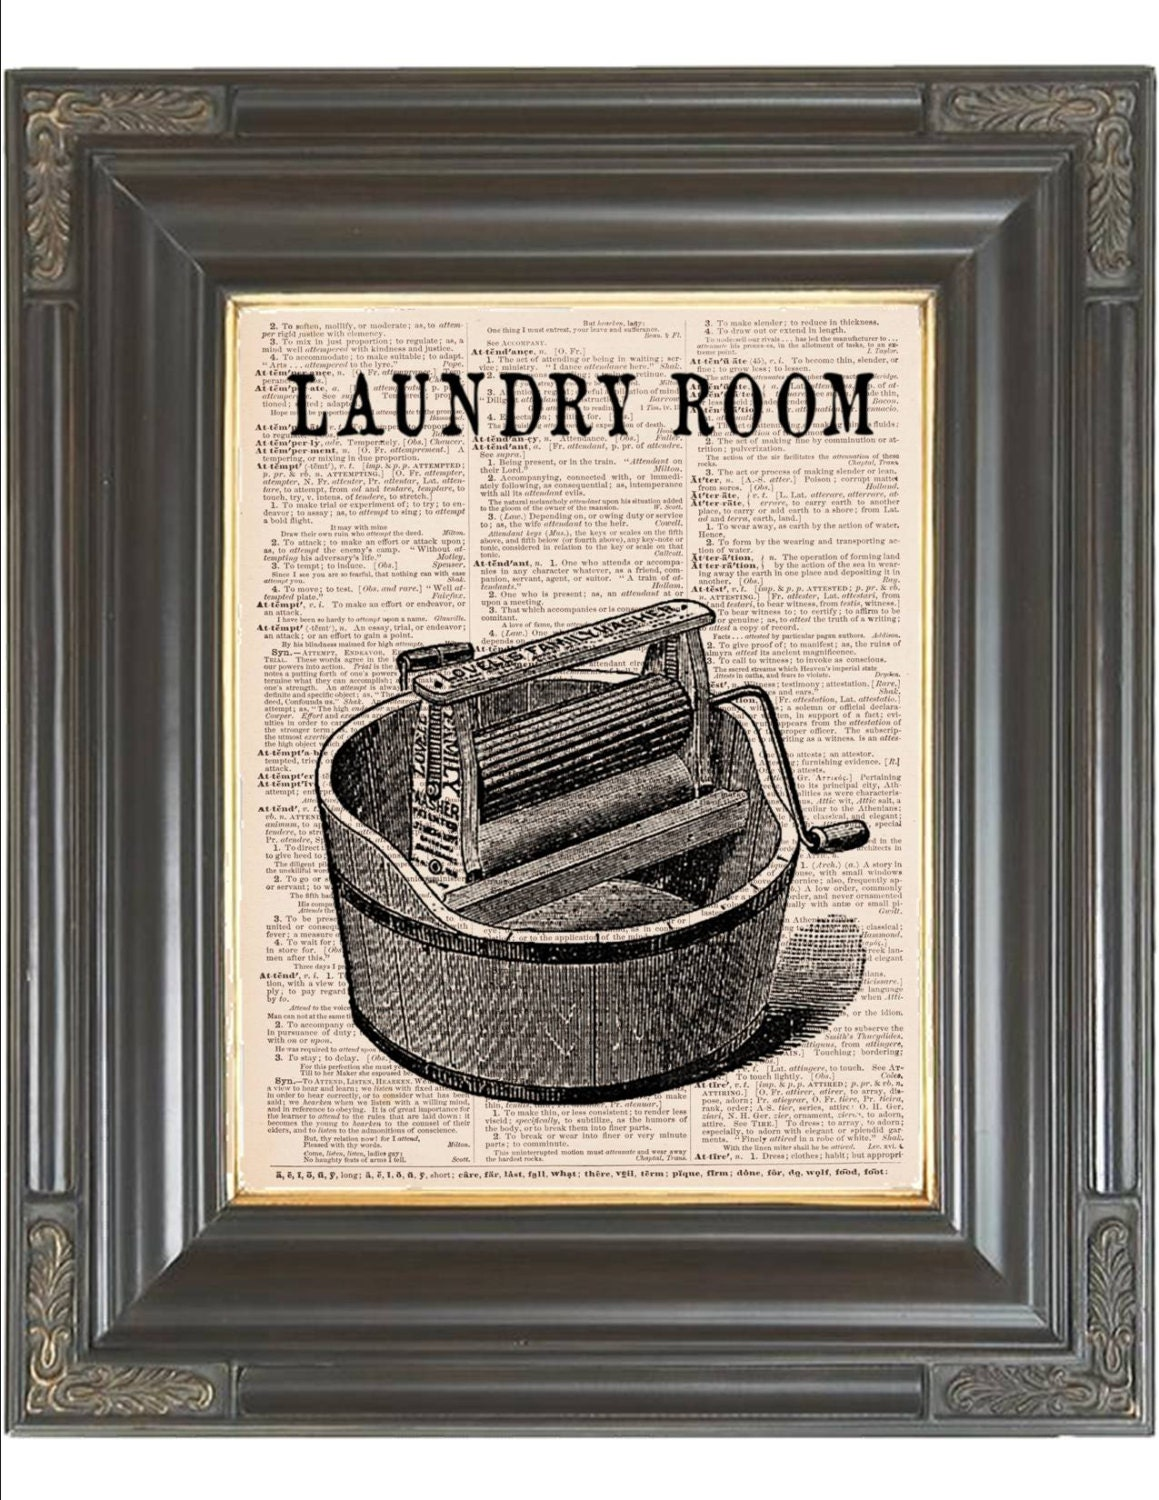 This is an image of Challenger Laundry Room Print